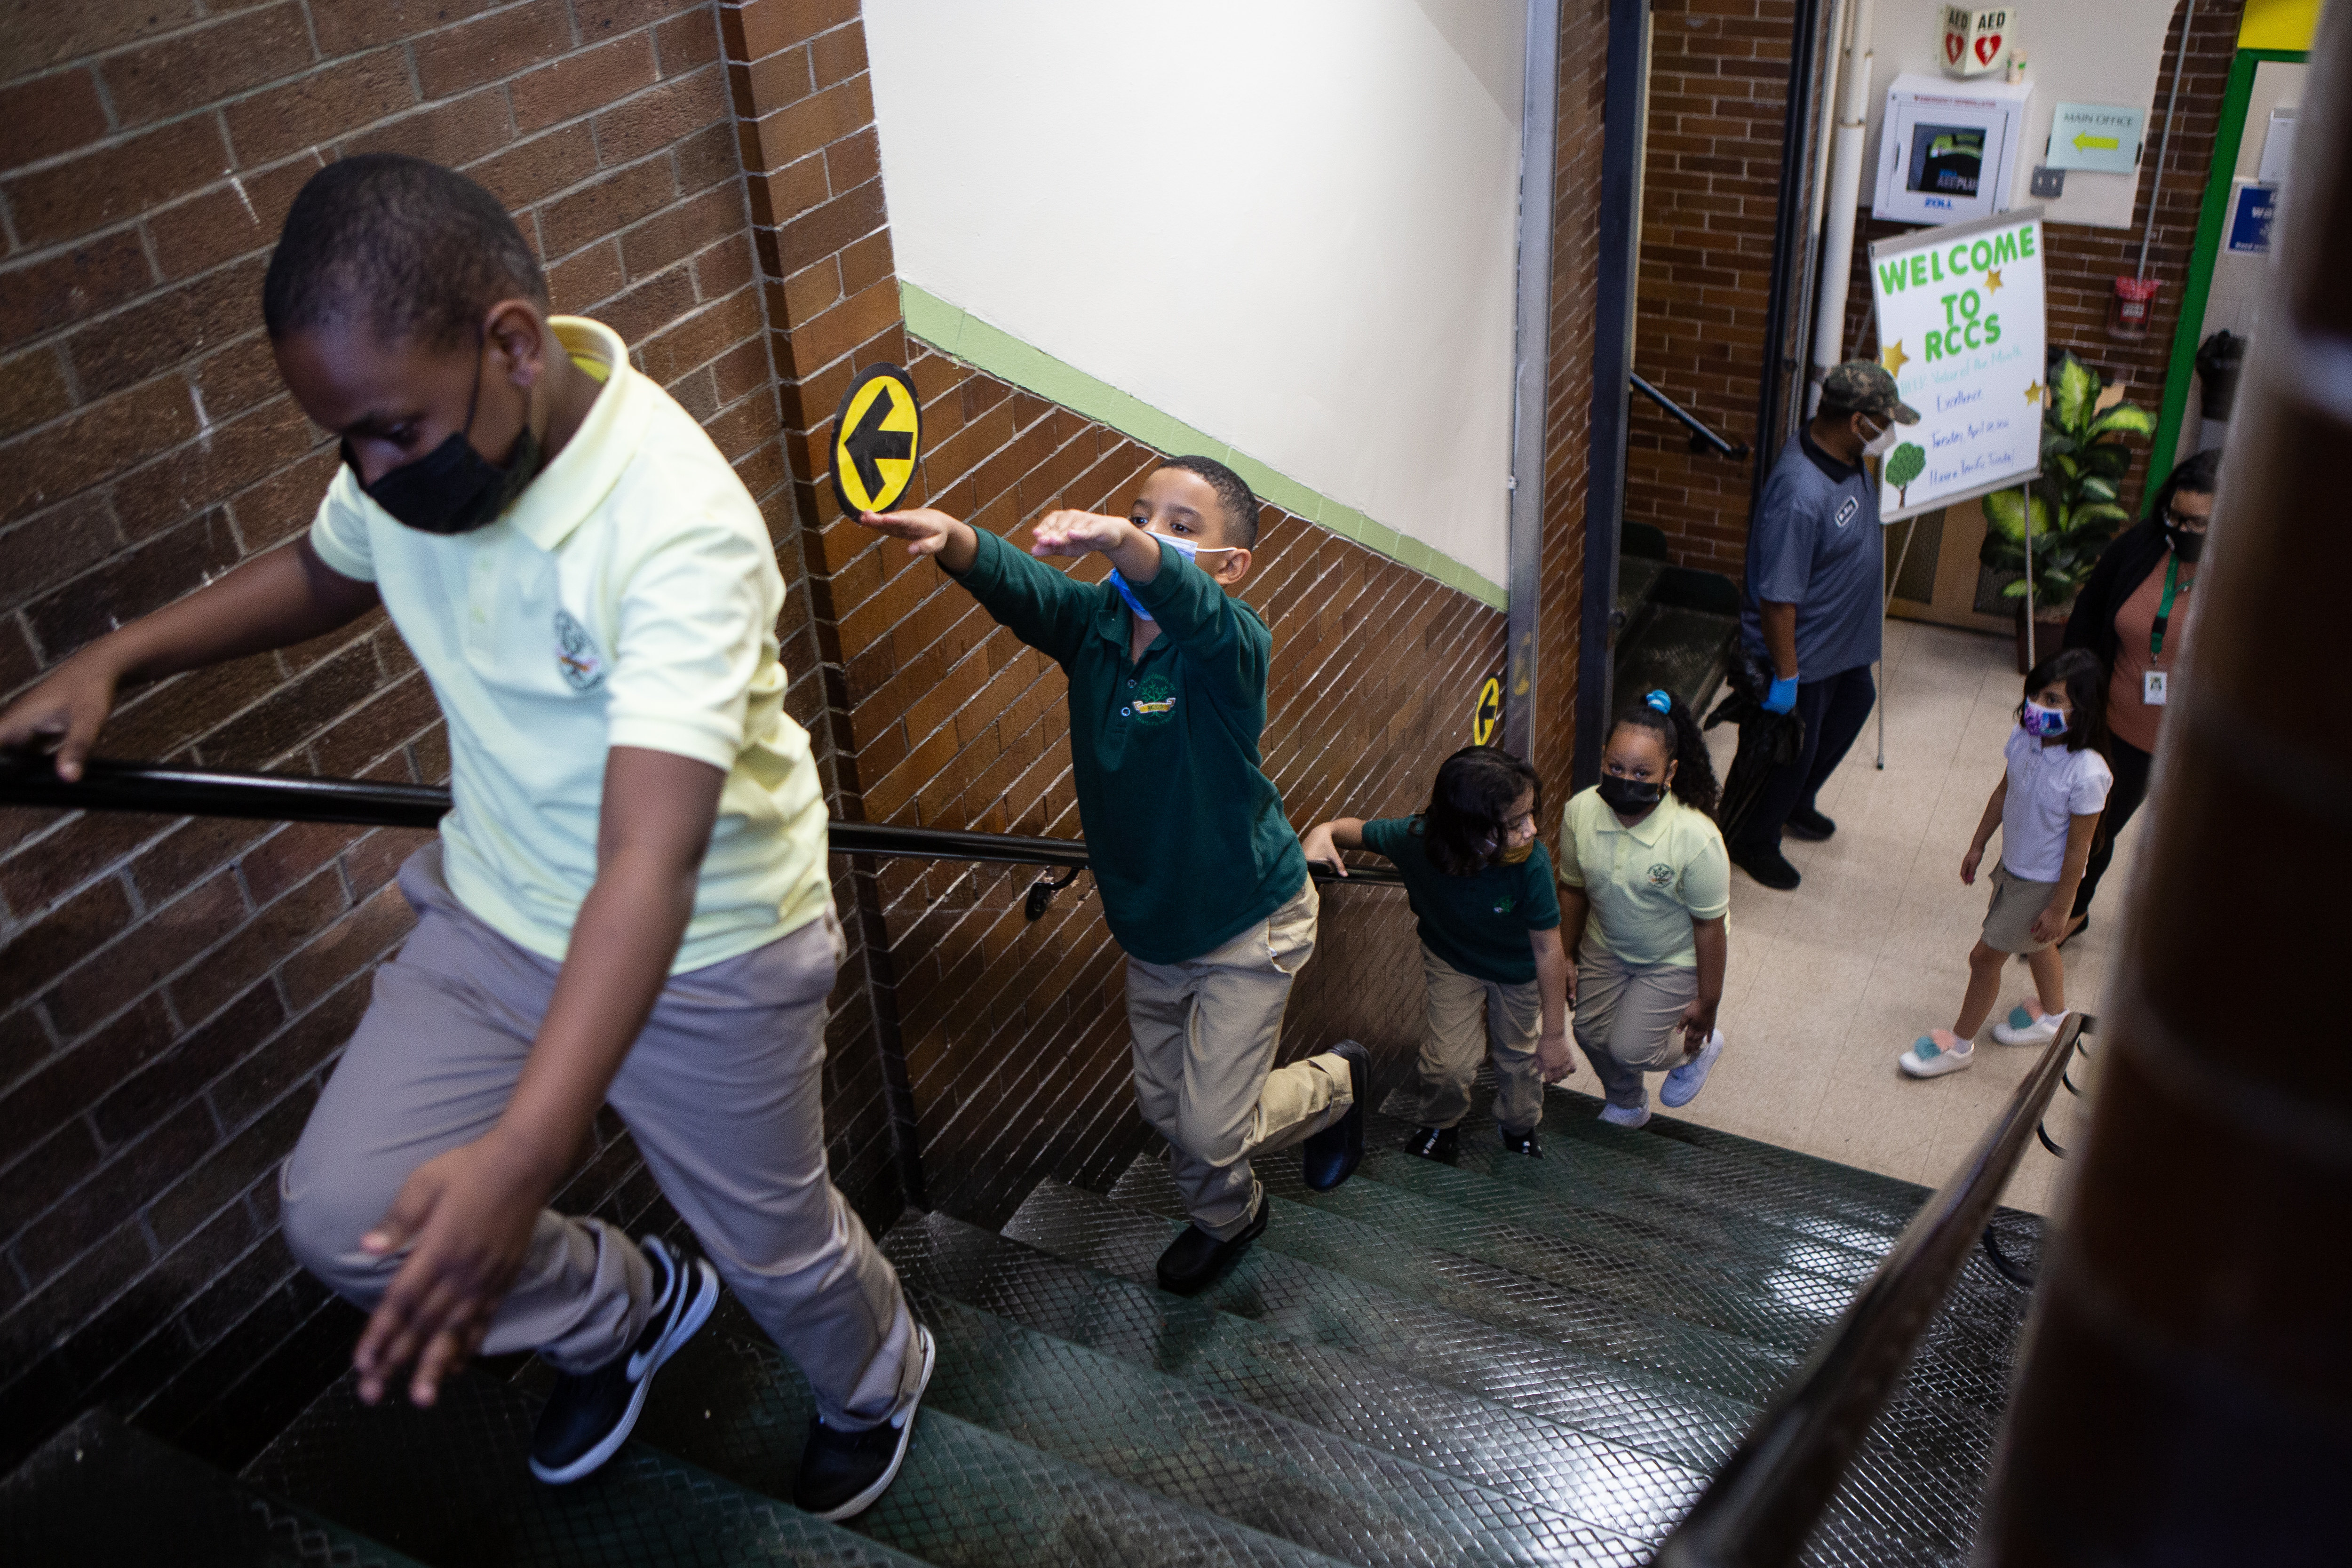 Masked second grade students walk up a stairwell, with one boy raising his arms in the air to practice arm's-length social distancing.